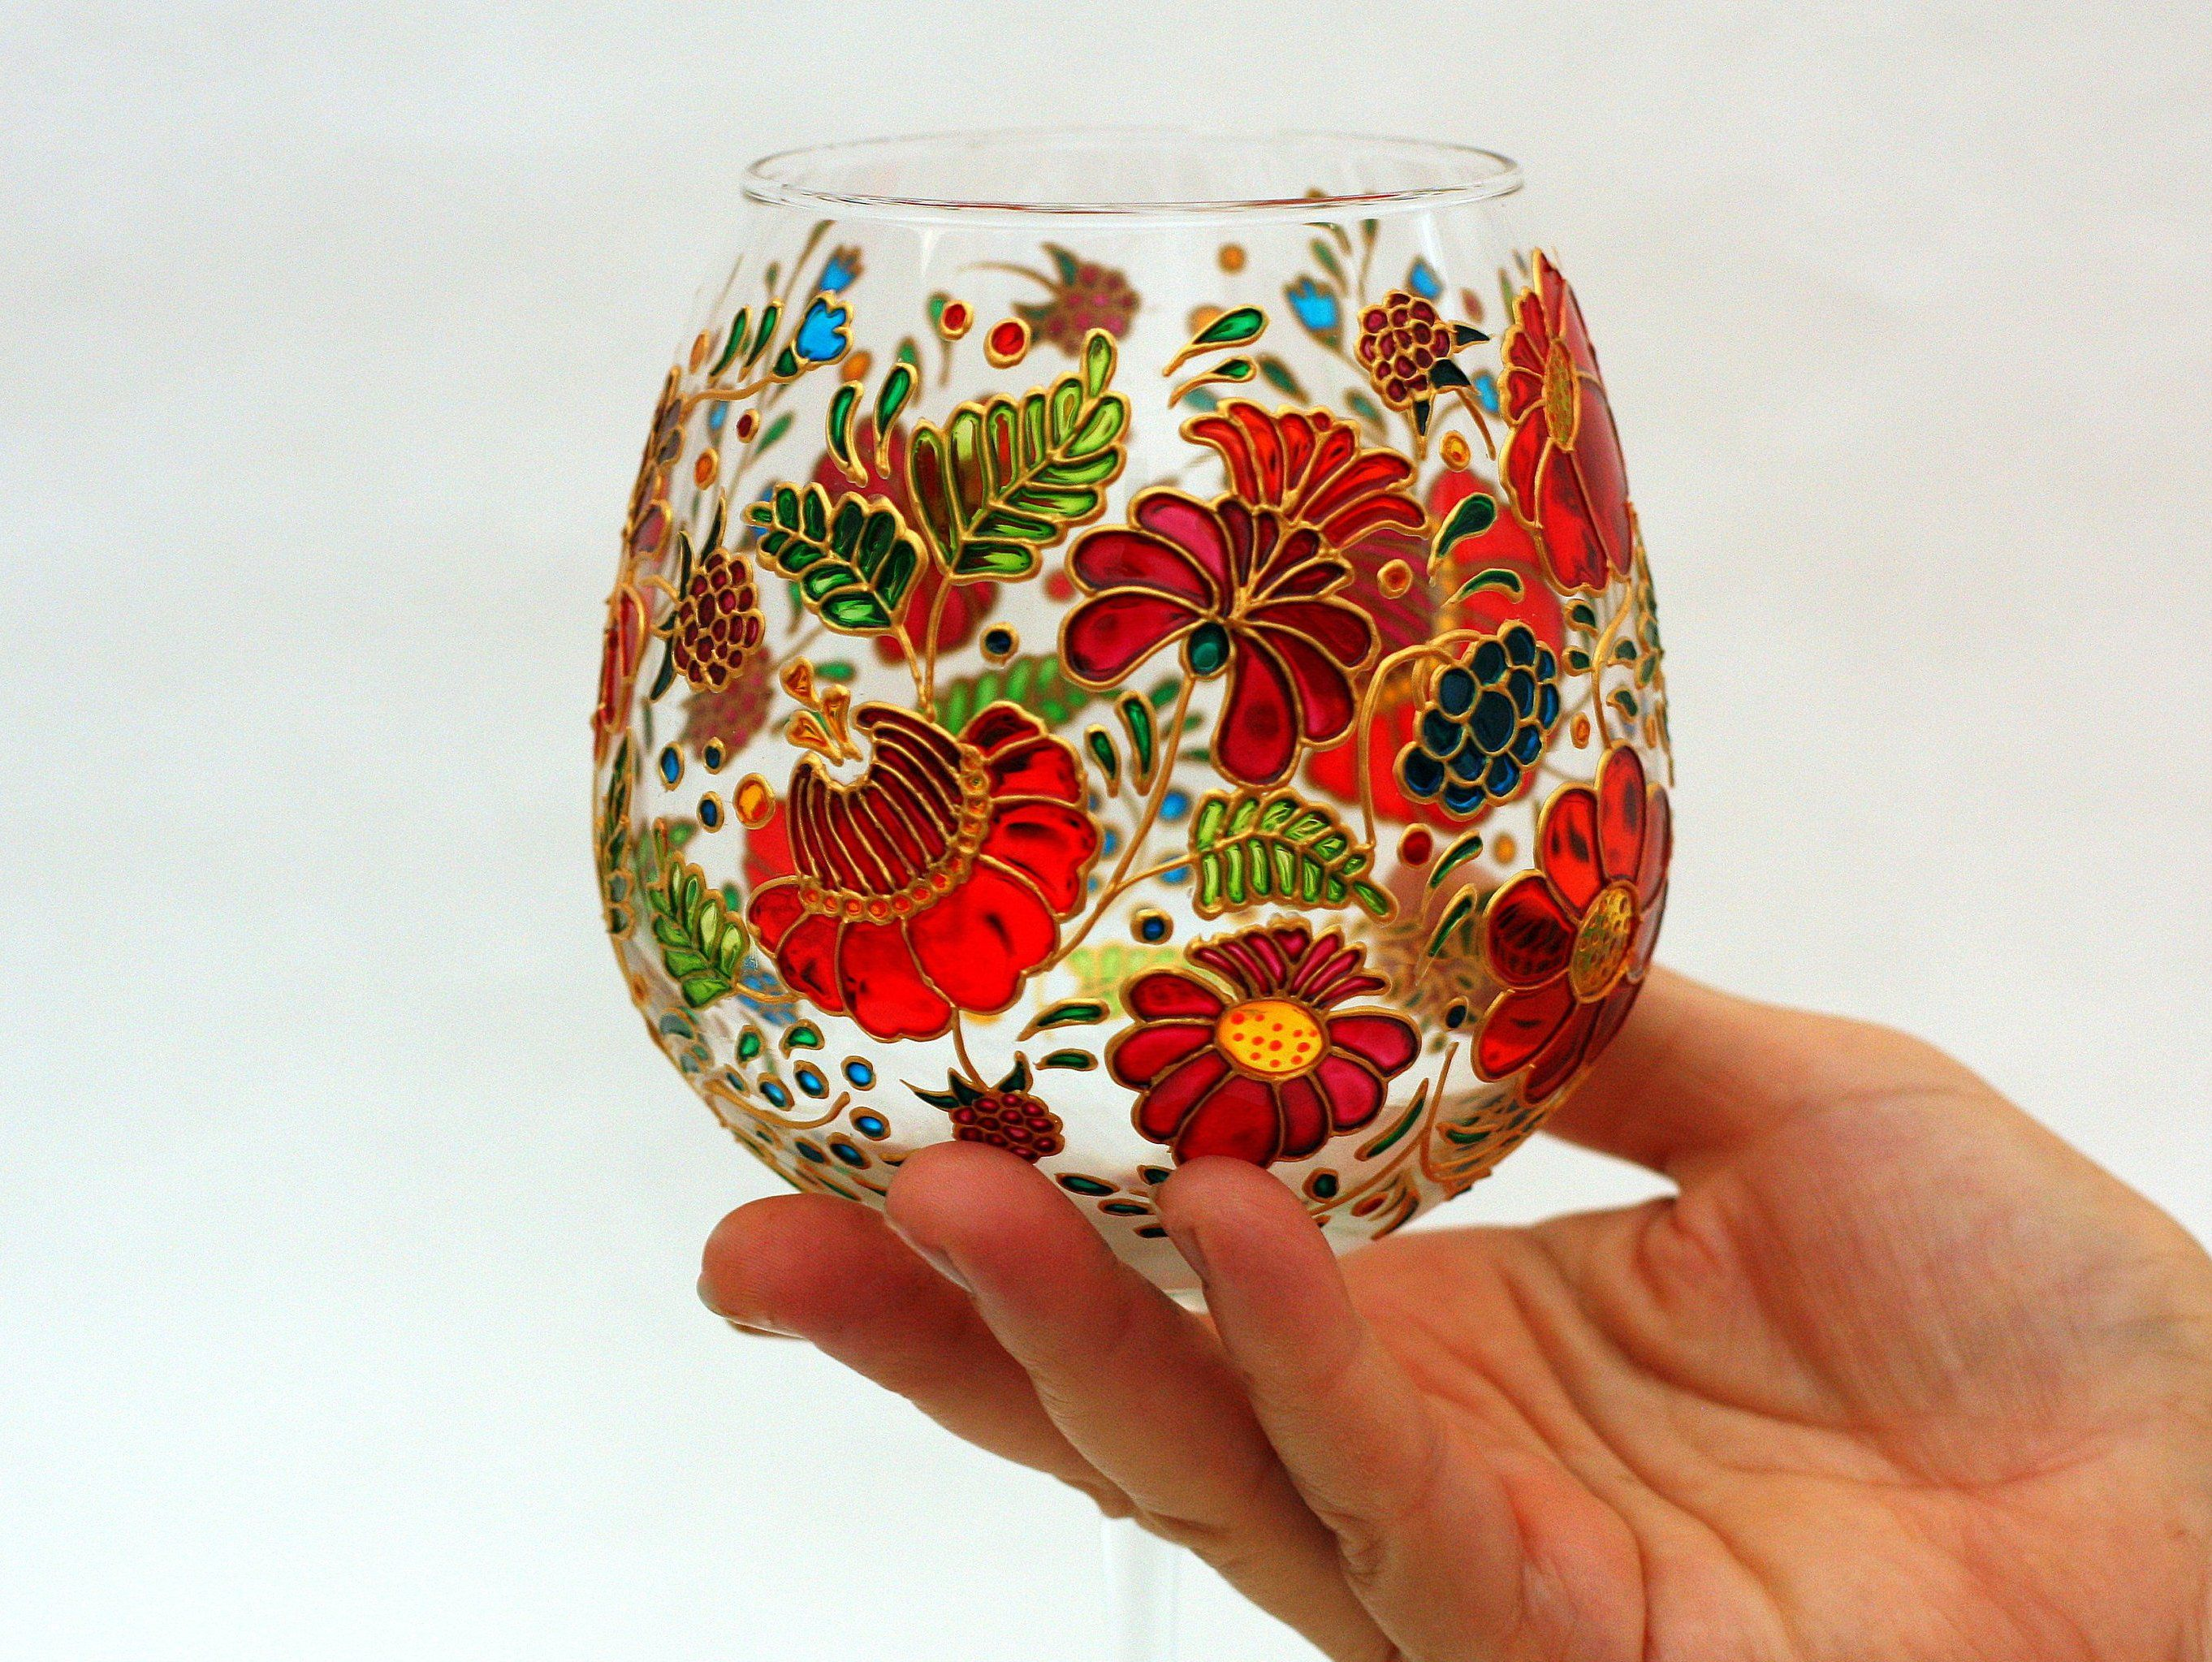 Hand Painted Red Wine Glass Large Floral Wedding Goblet Set Etsy Painted Wine Glasses Flowers Hand Painted Wine Glasses Wedding Painted Wine Glasses